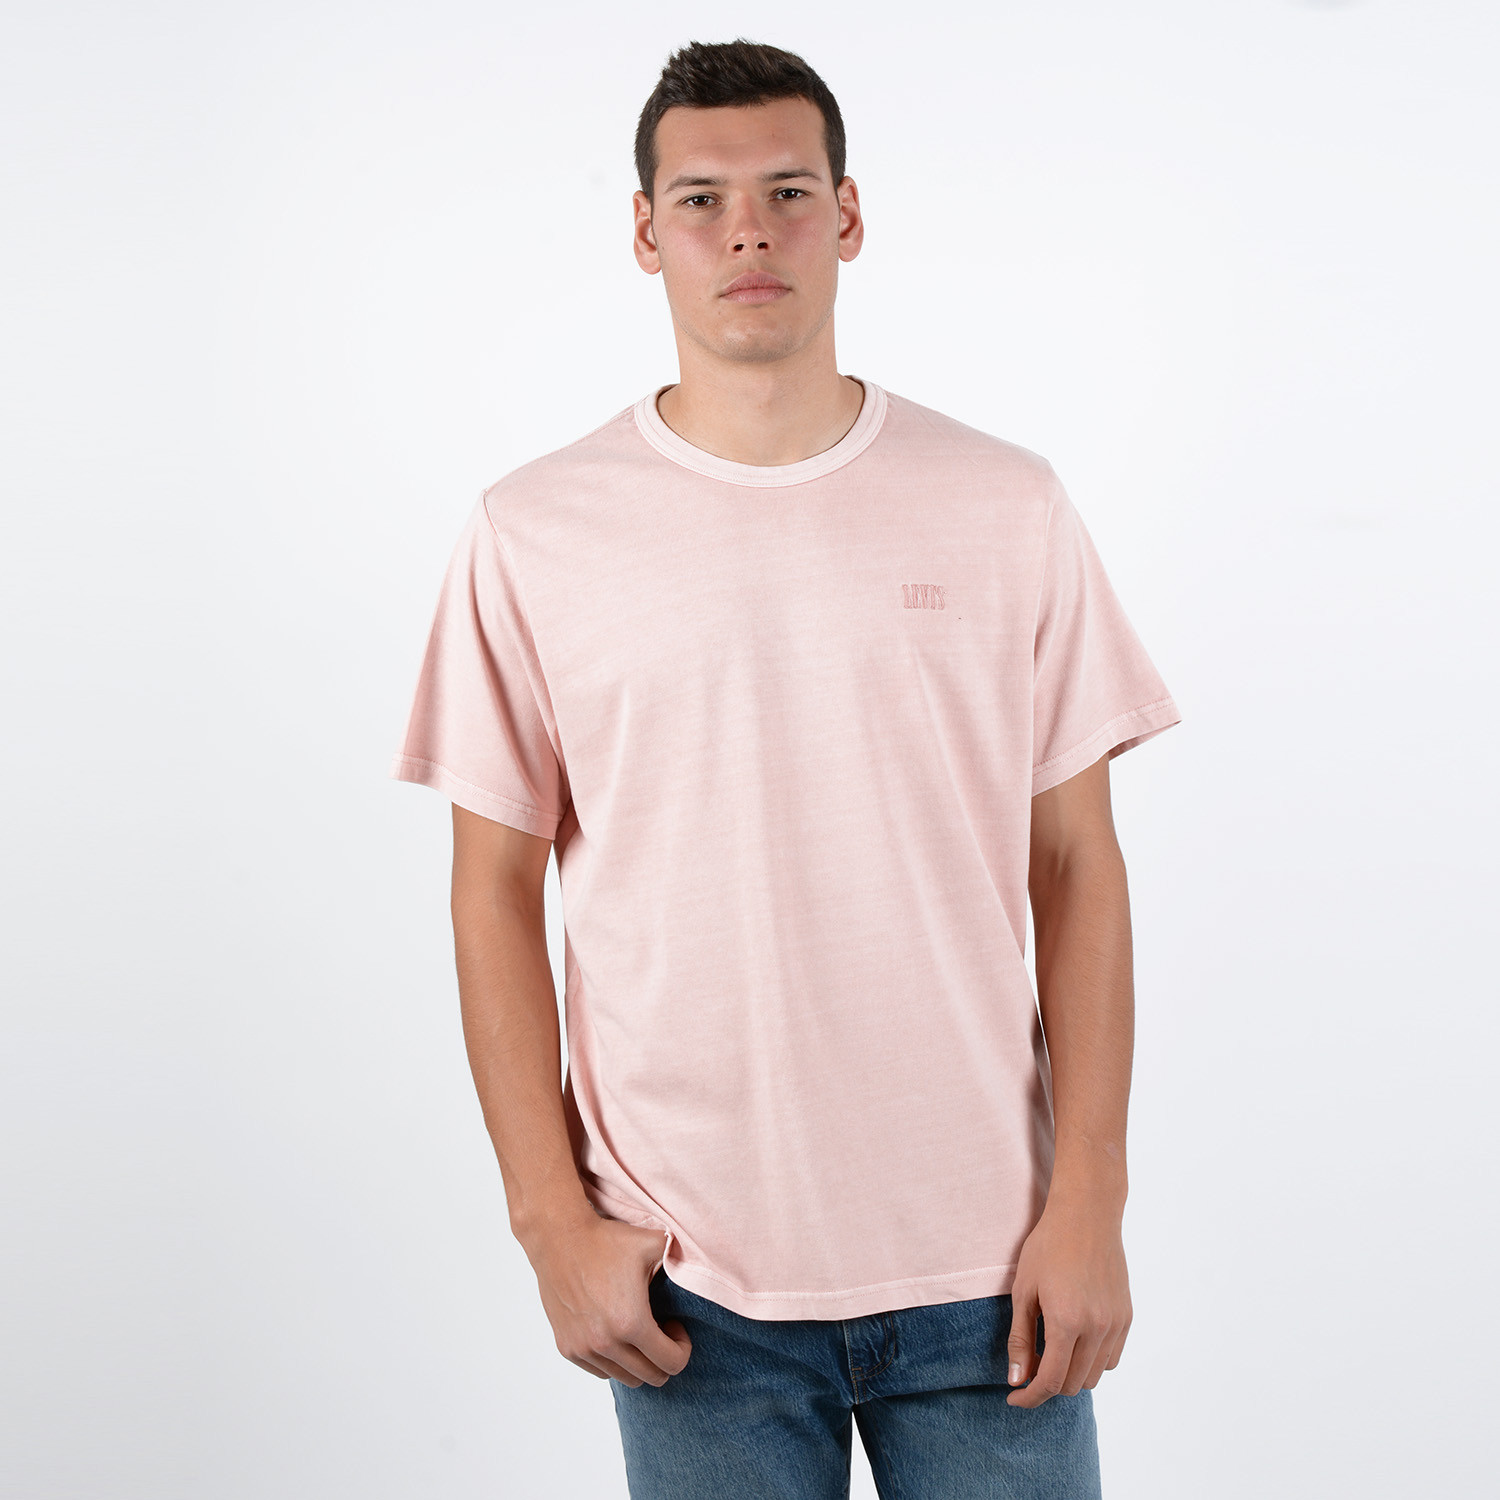 Levis Authentic Crewneck Tee Farallon X (9000048388_26107)